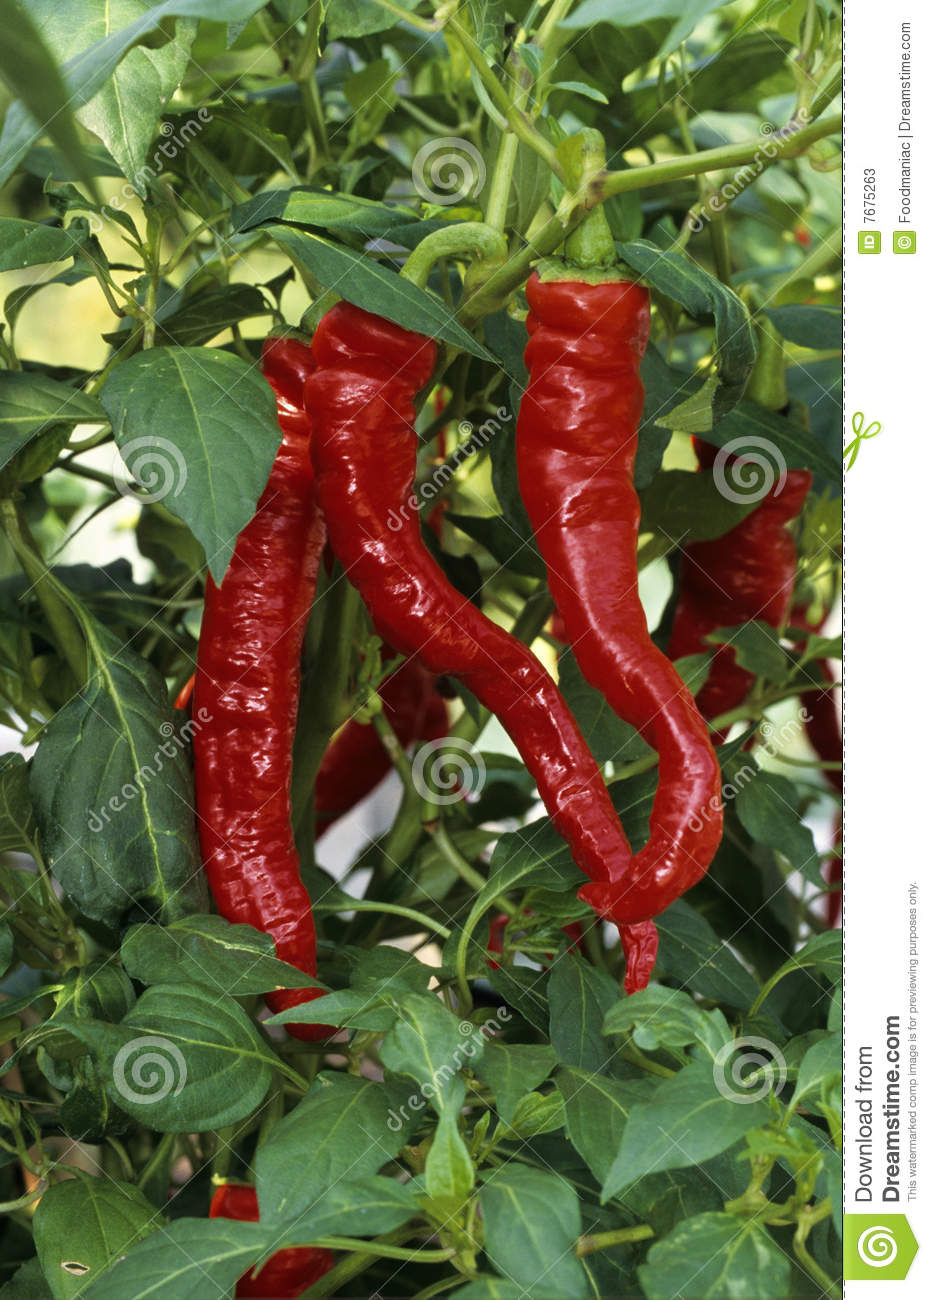 Red Chili Pepper Stock Photos - Image: 7675263